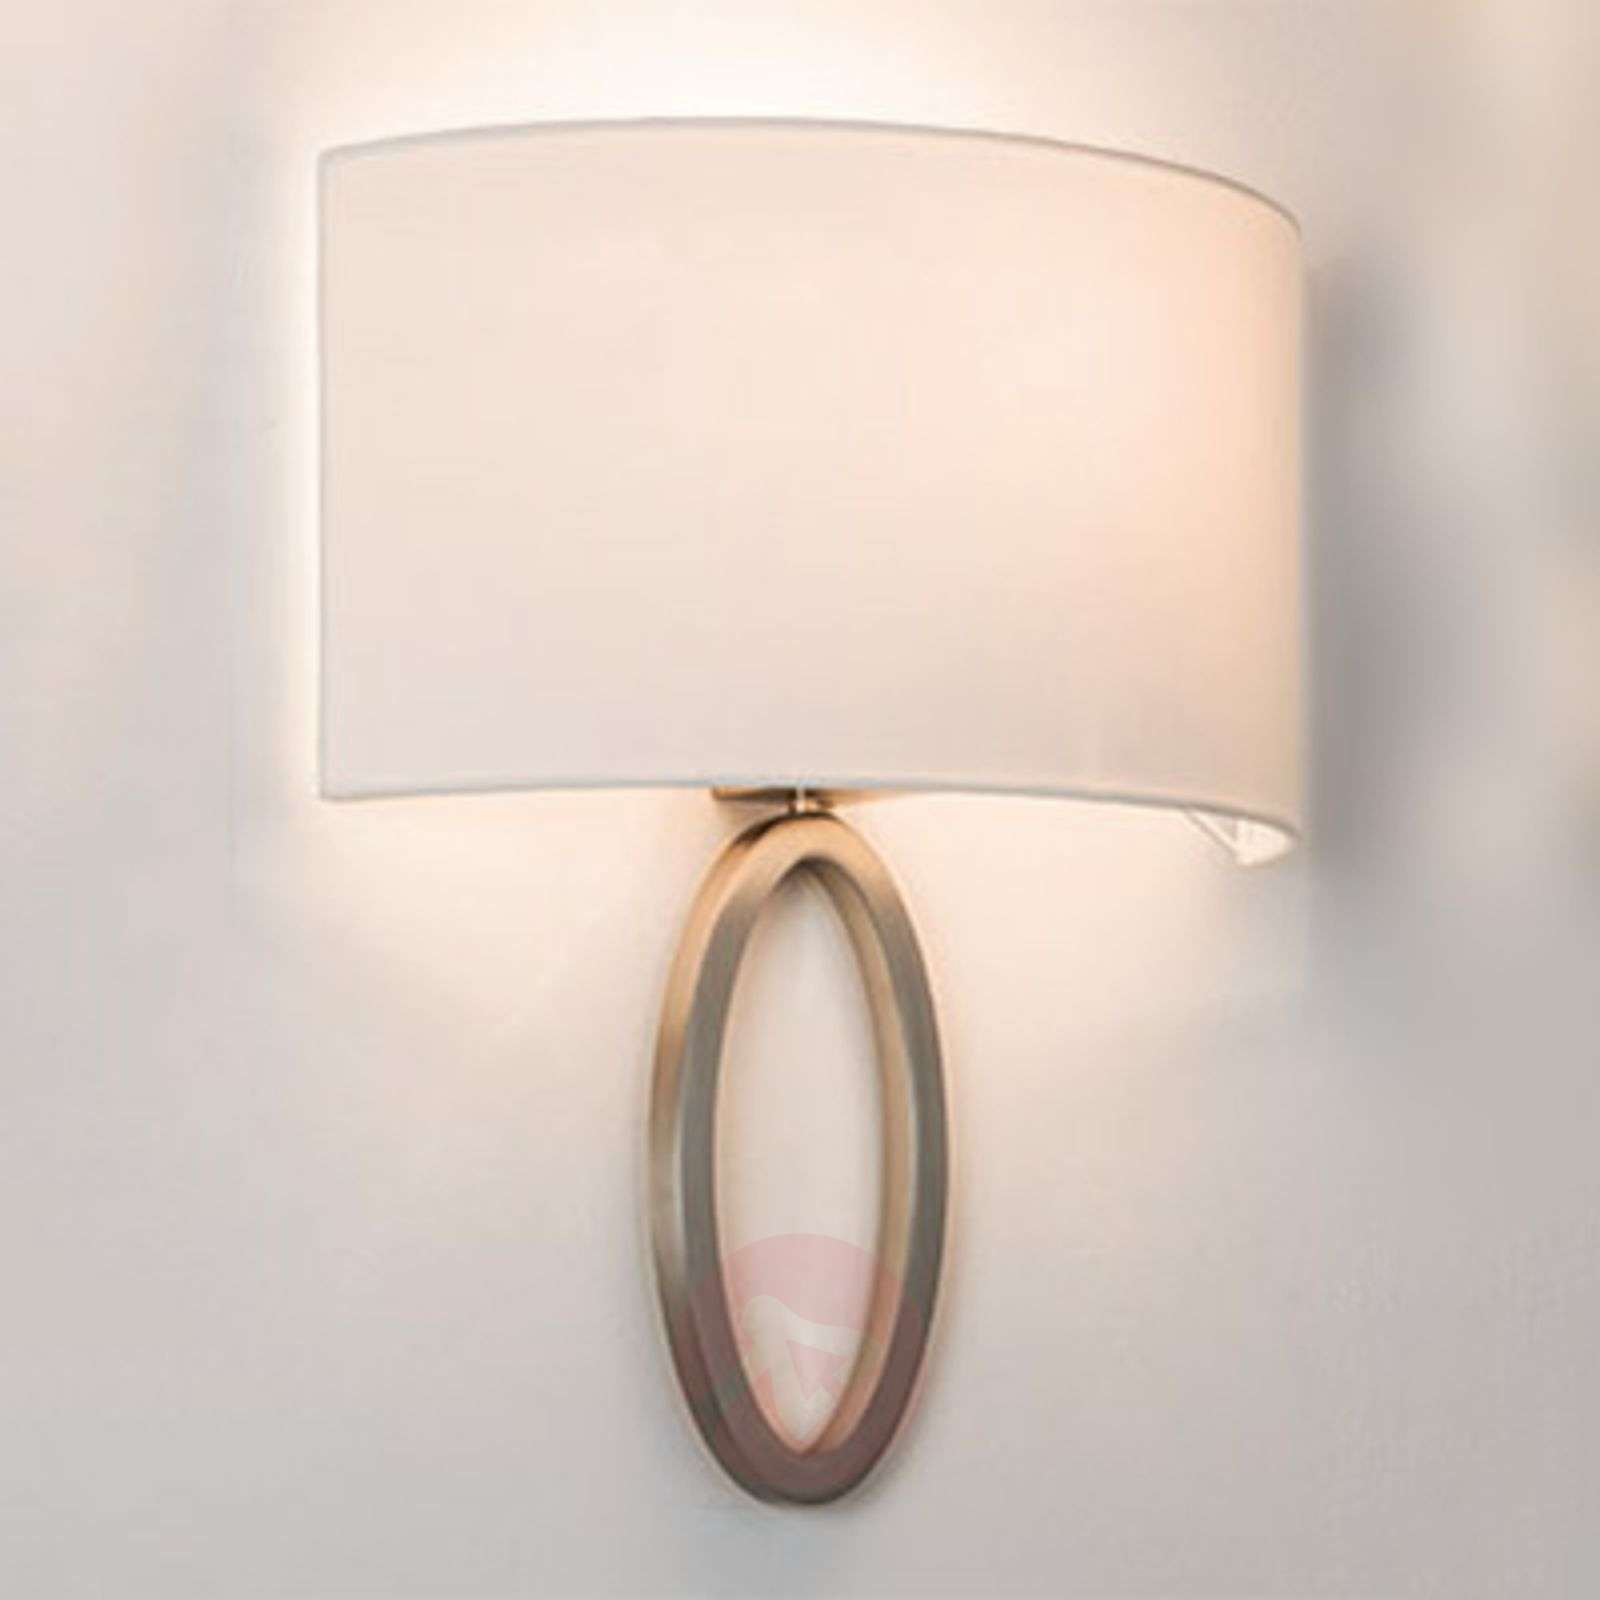 Elegant fabric wall light Lima in white-1020521-01